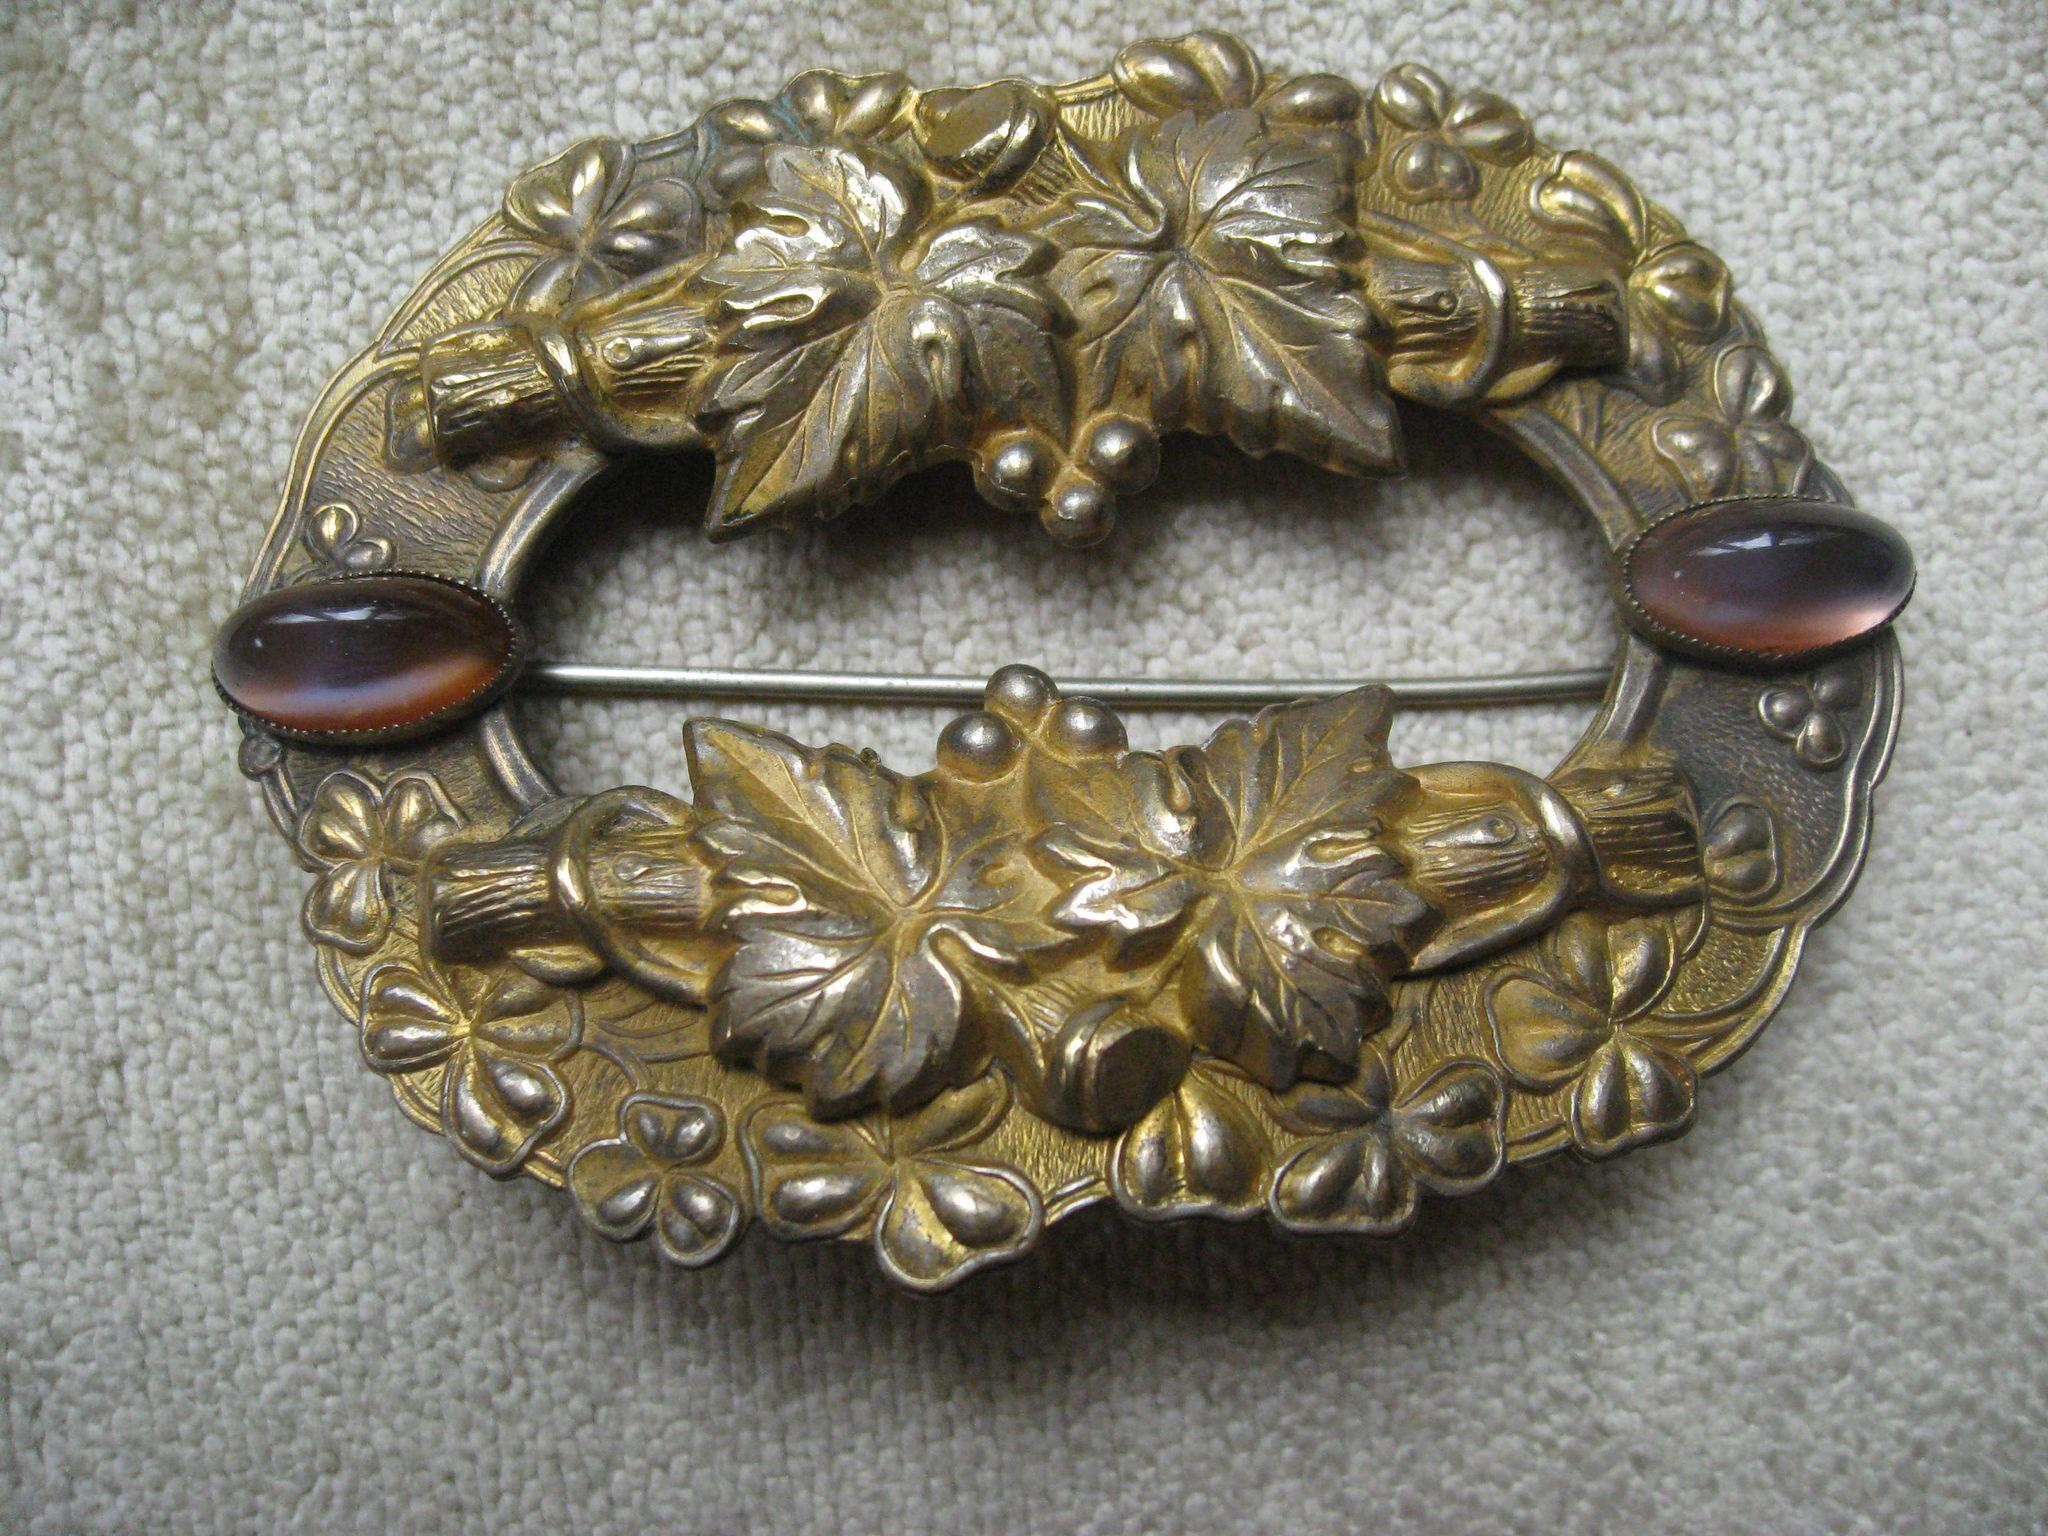 Antique Dragon's Breath Sash Pin, Victorian Brooch